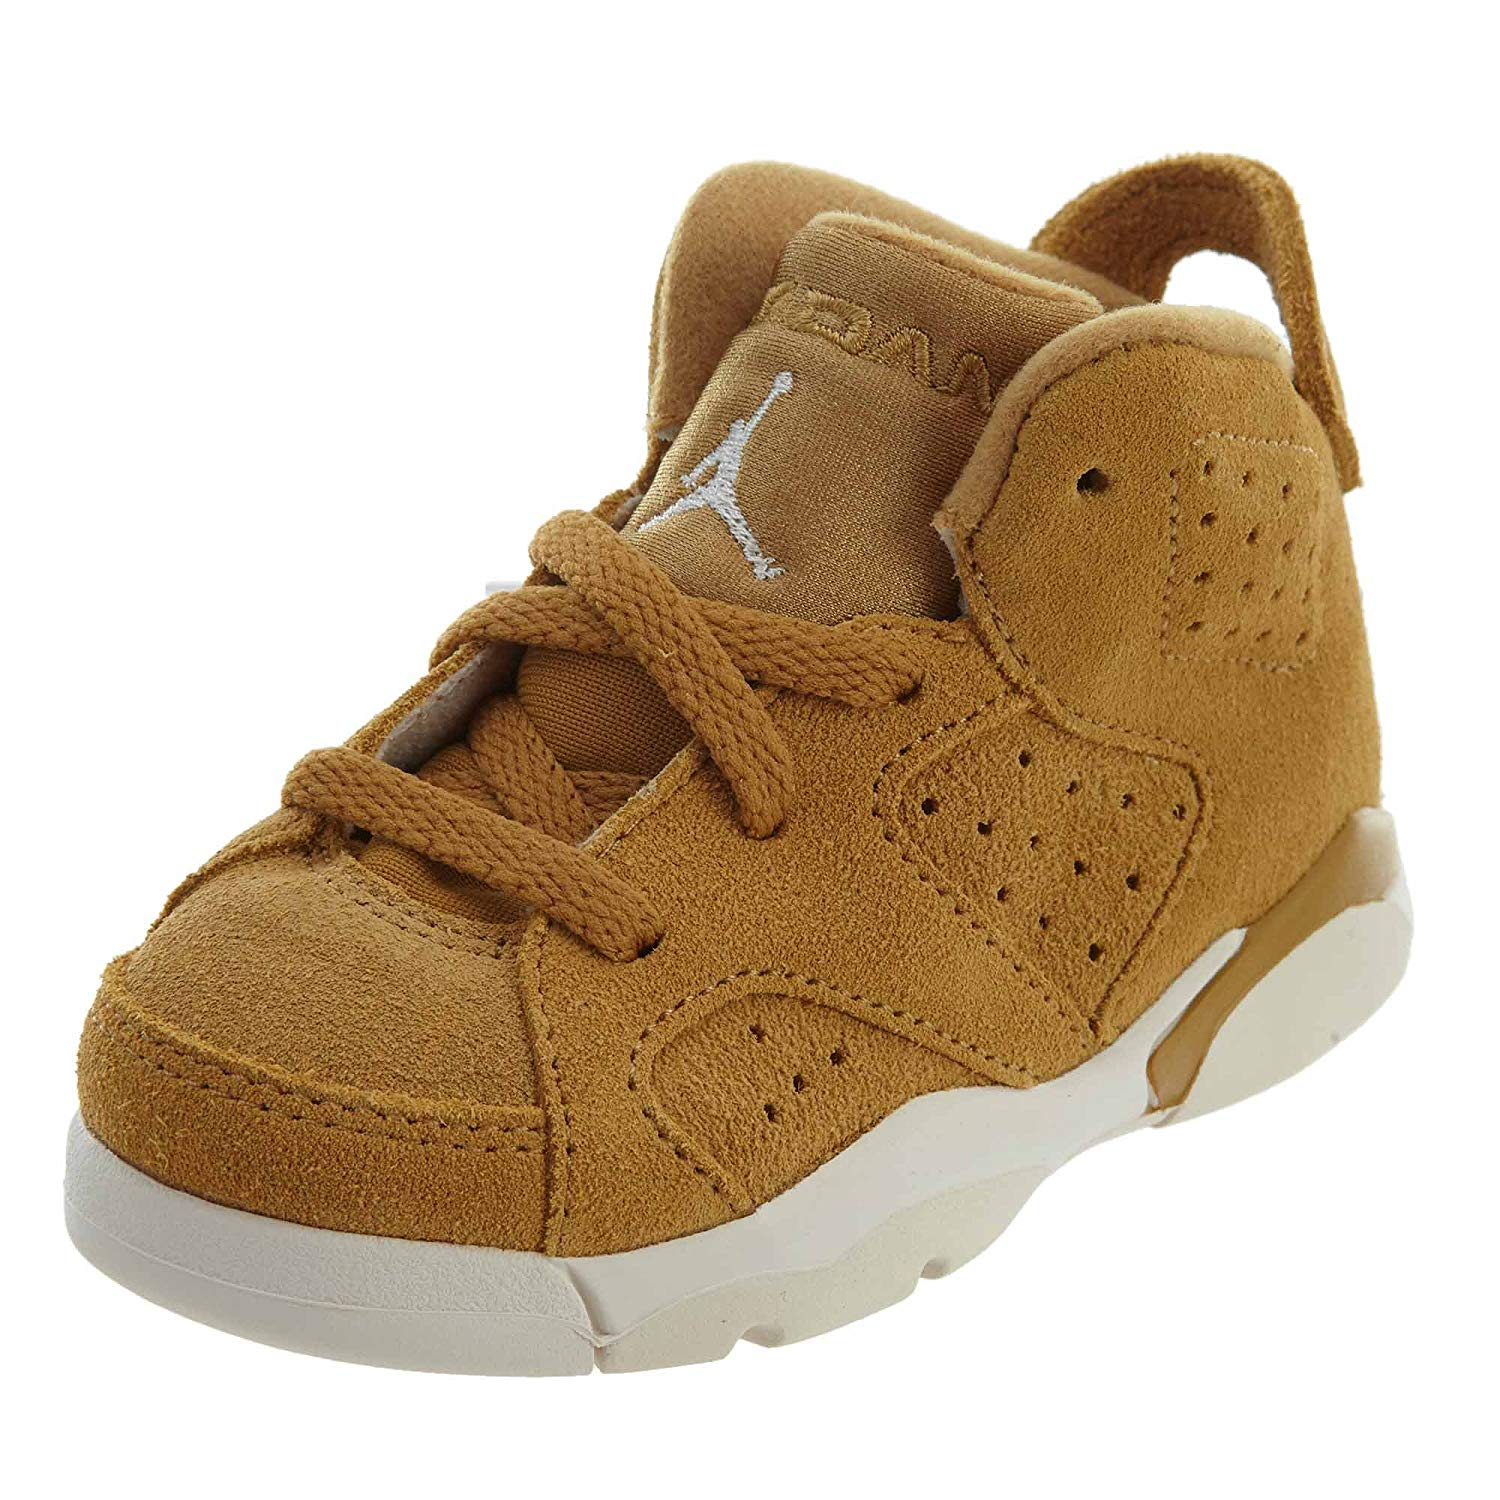 61a99465635c Get Quotations · Jordan Retro 6